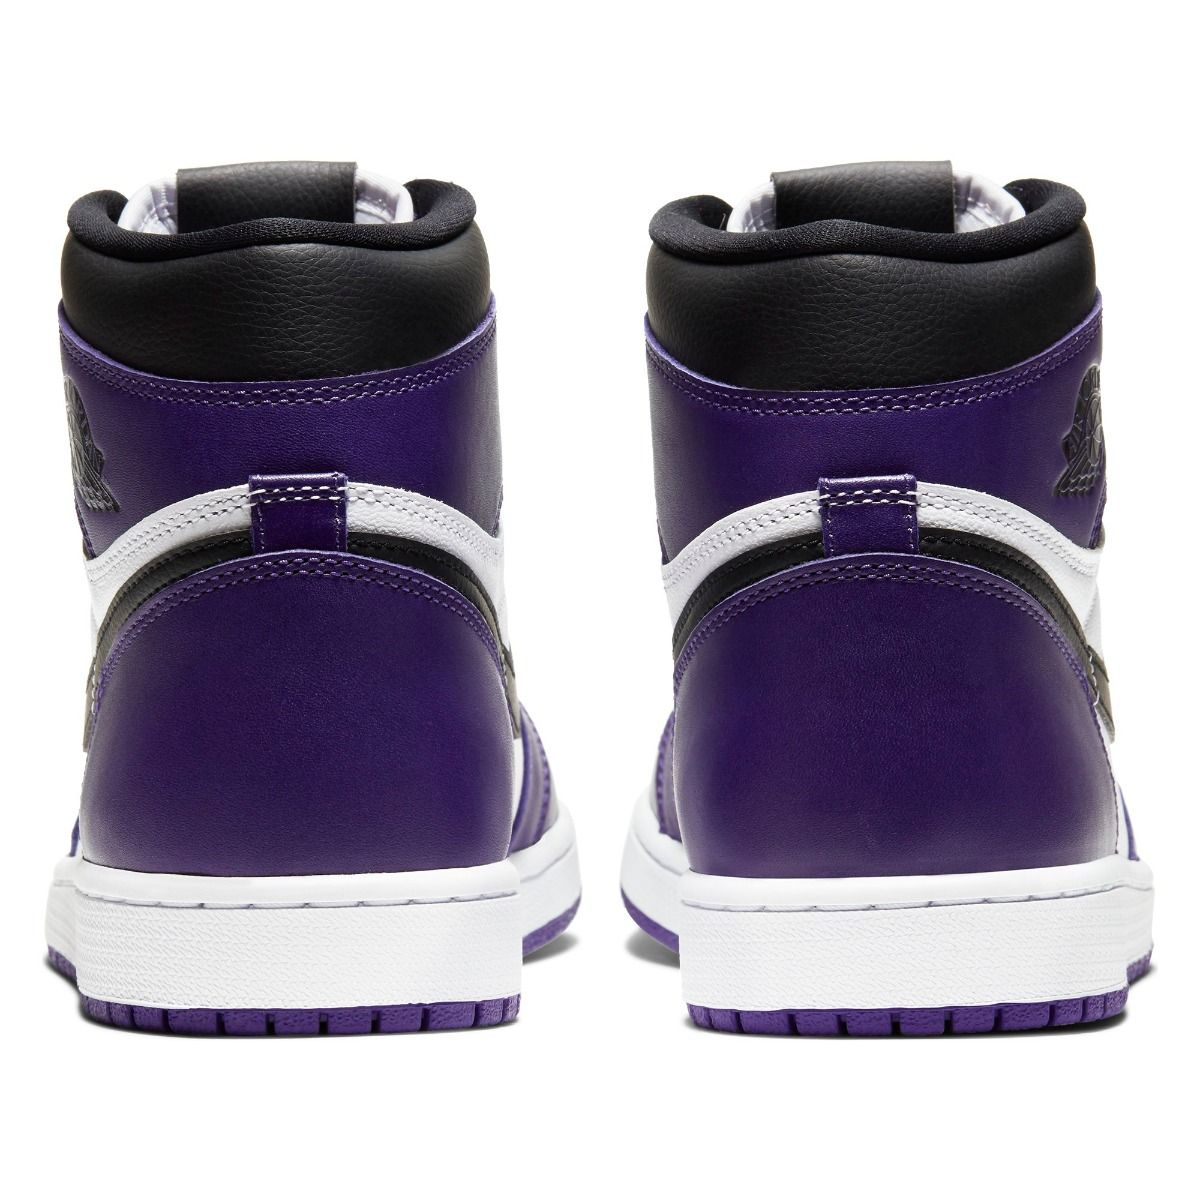 air jordan 1 court purple raffle list